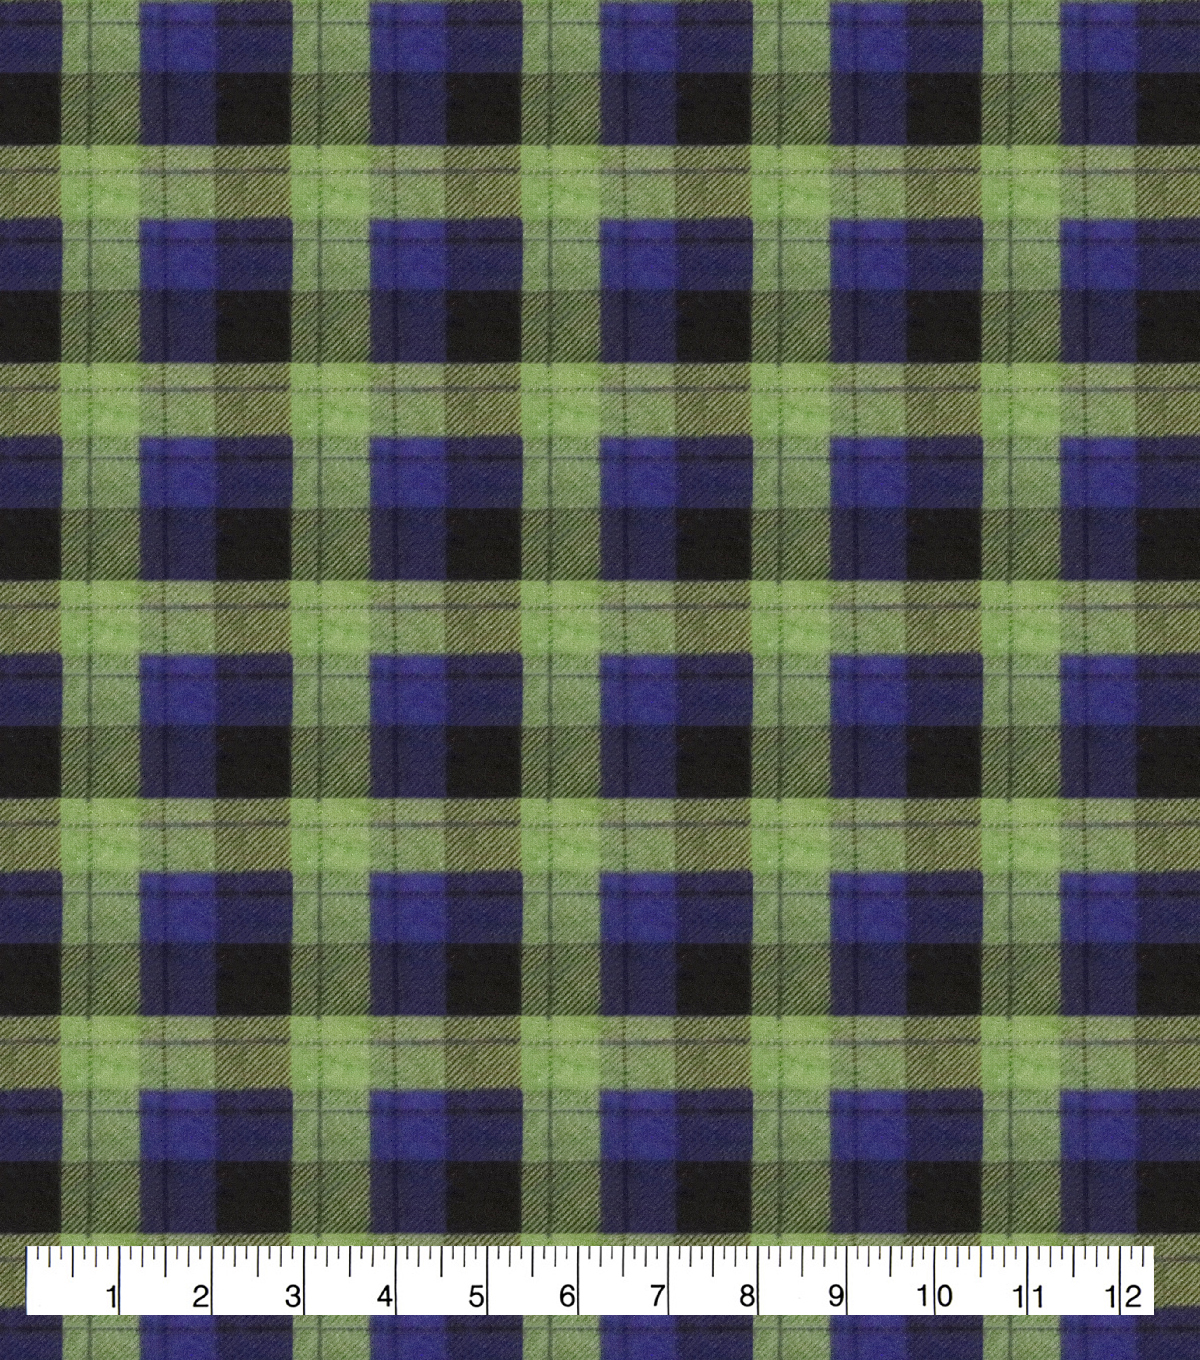 Super Snuggle Flannel Fabric-Skylar Blue Green Plaid